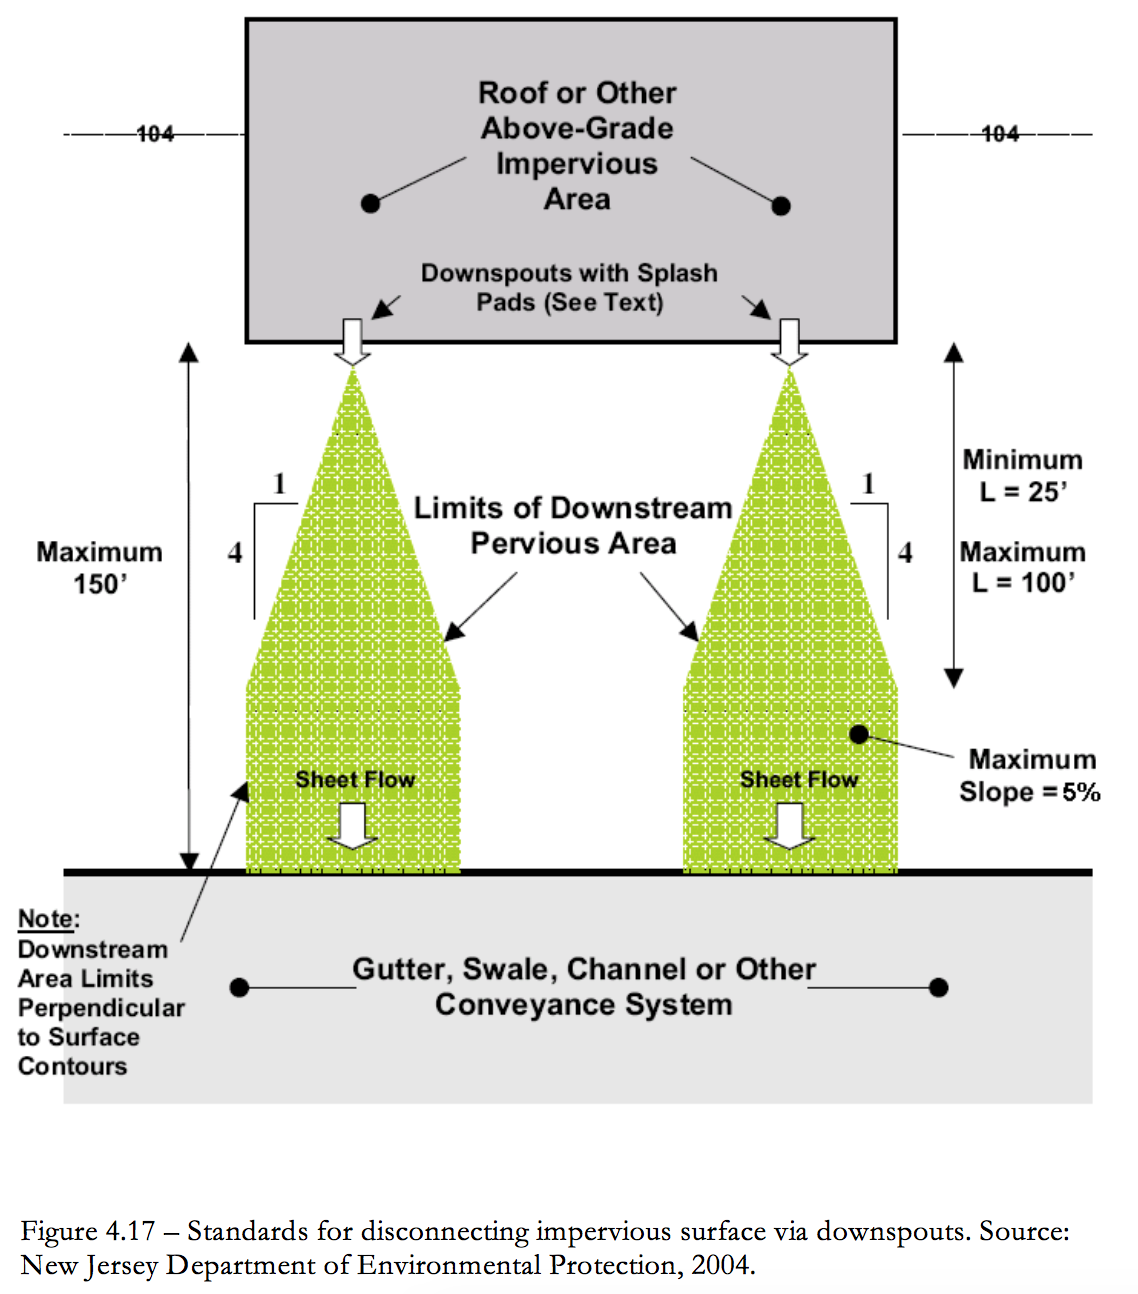 Figure 4.17 Standards for disconnecting impervious surface via downspout.